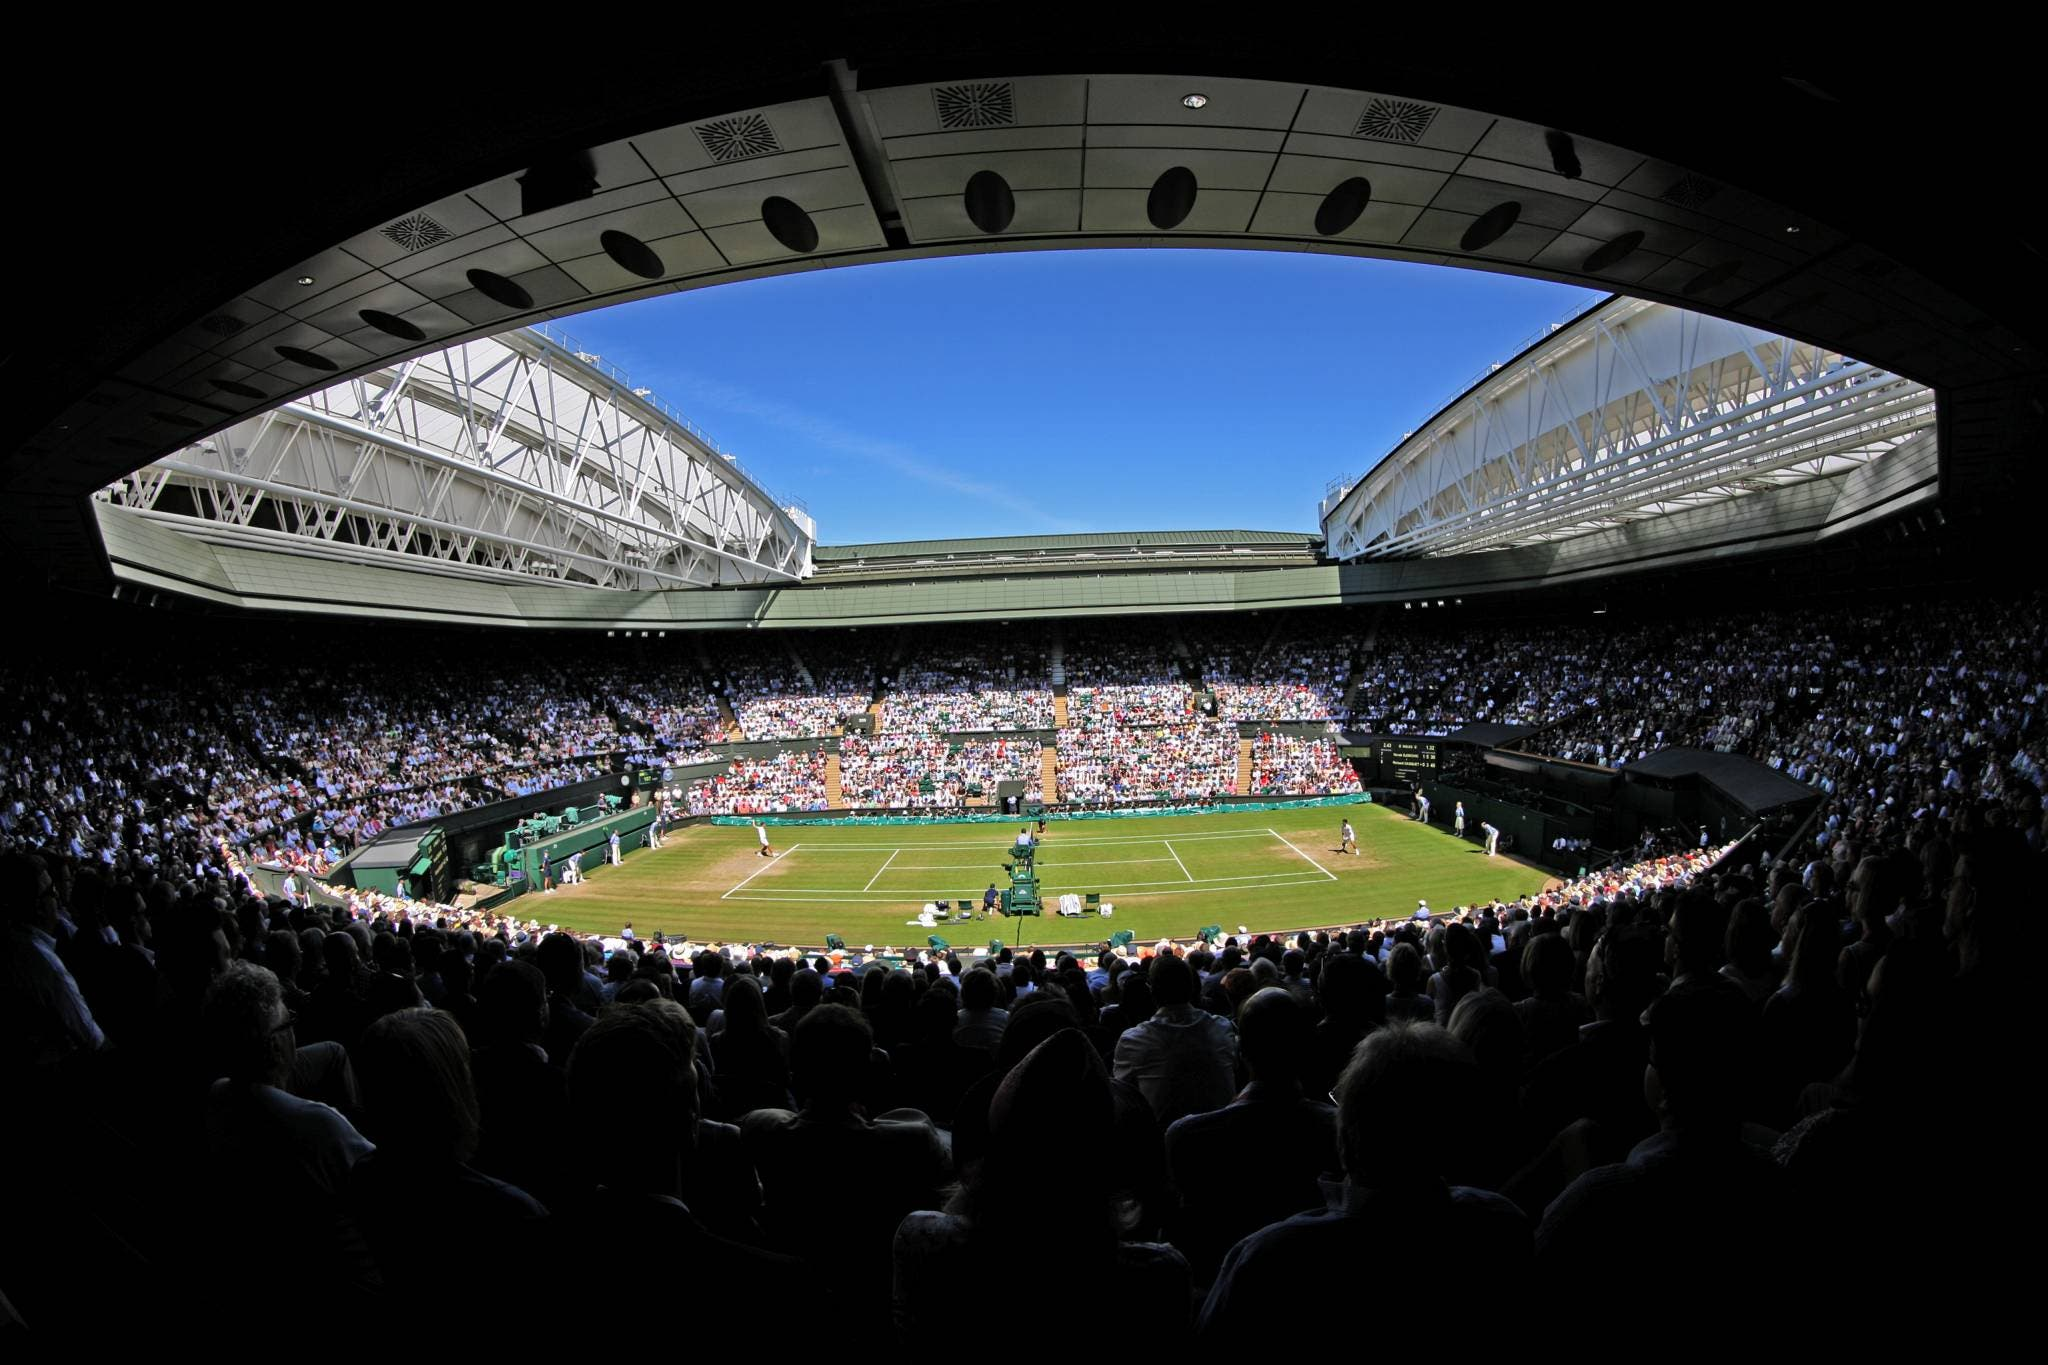 wimbledon middle eastern singles The early rounds at wimbledon provided  with simultaneous coverage in the middle of the week on both its main channel and  all times are eastern.